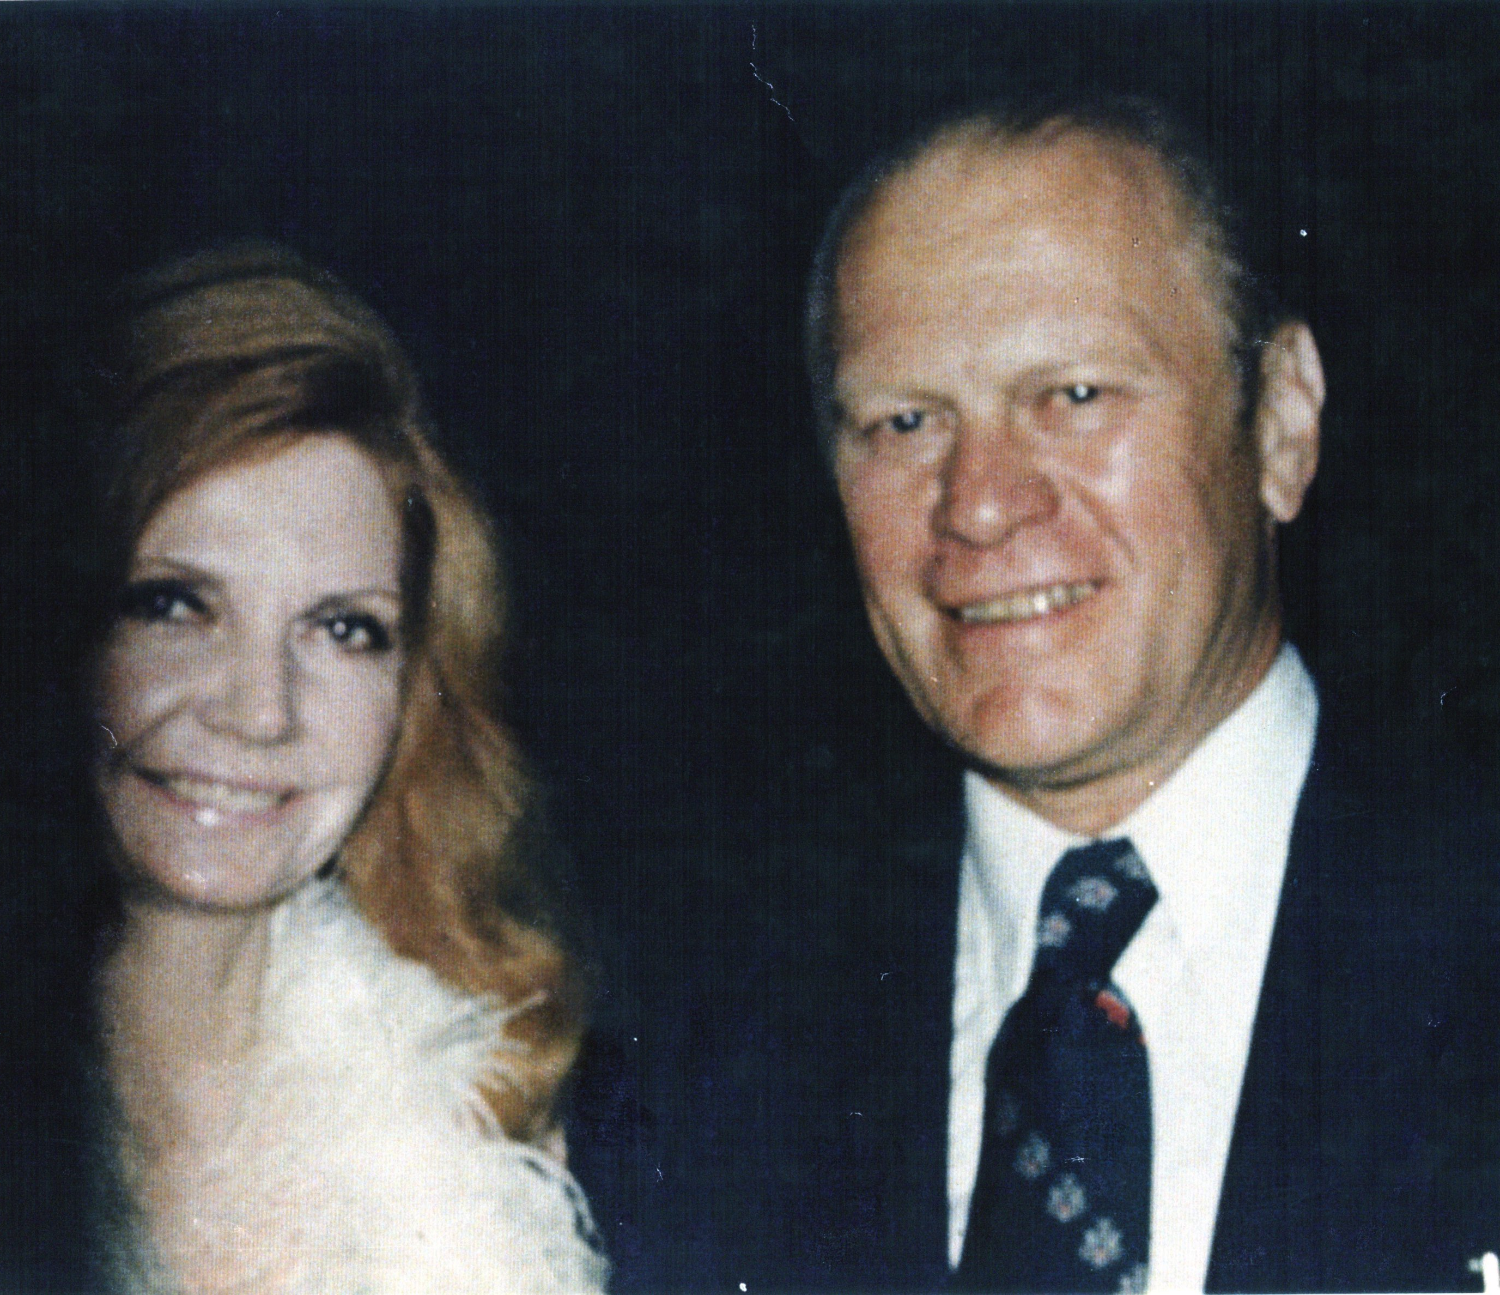 Gerald Ford & Cindy